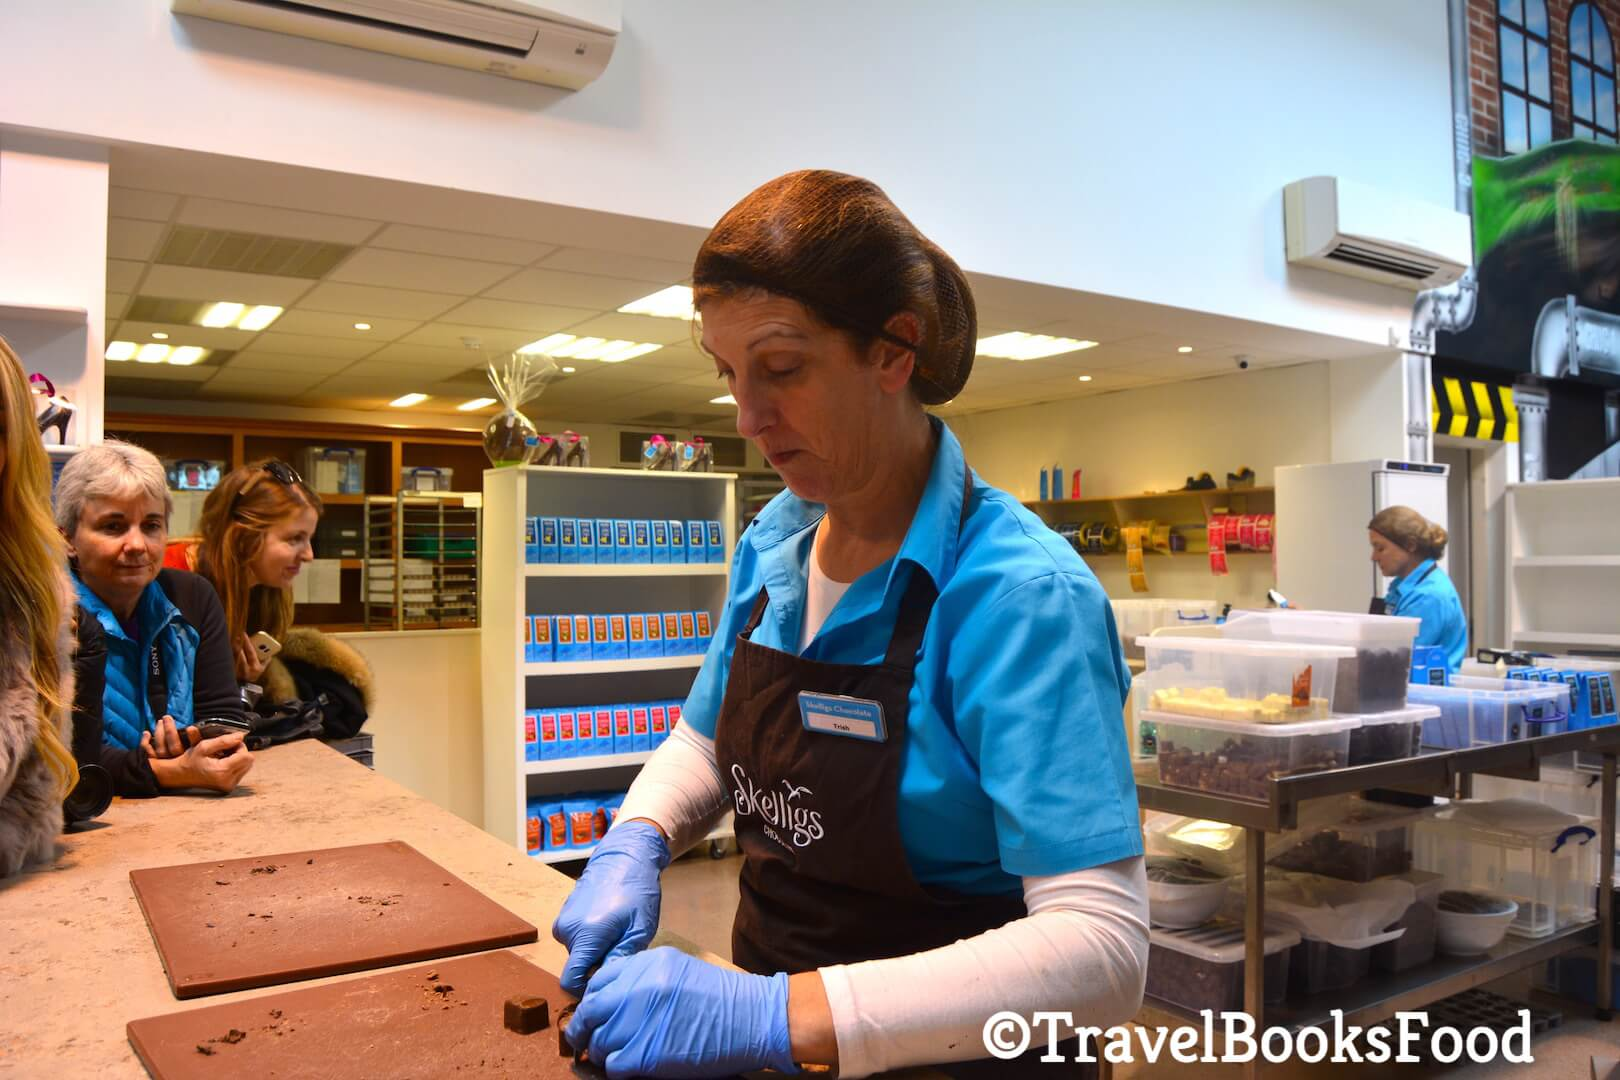 A lady explaining to us the different types of Chocolates made at Skellings chocolate factory